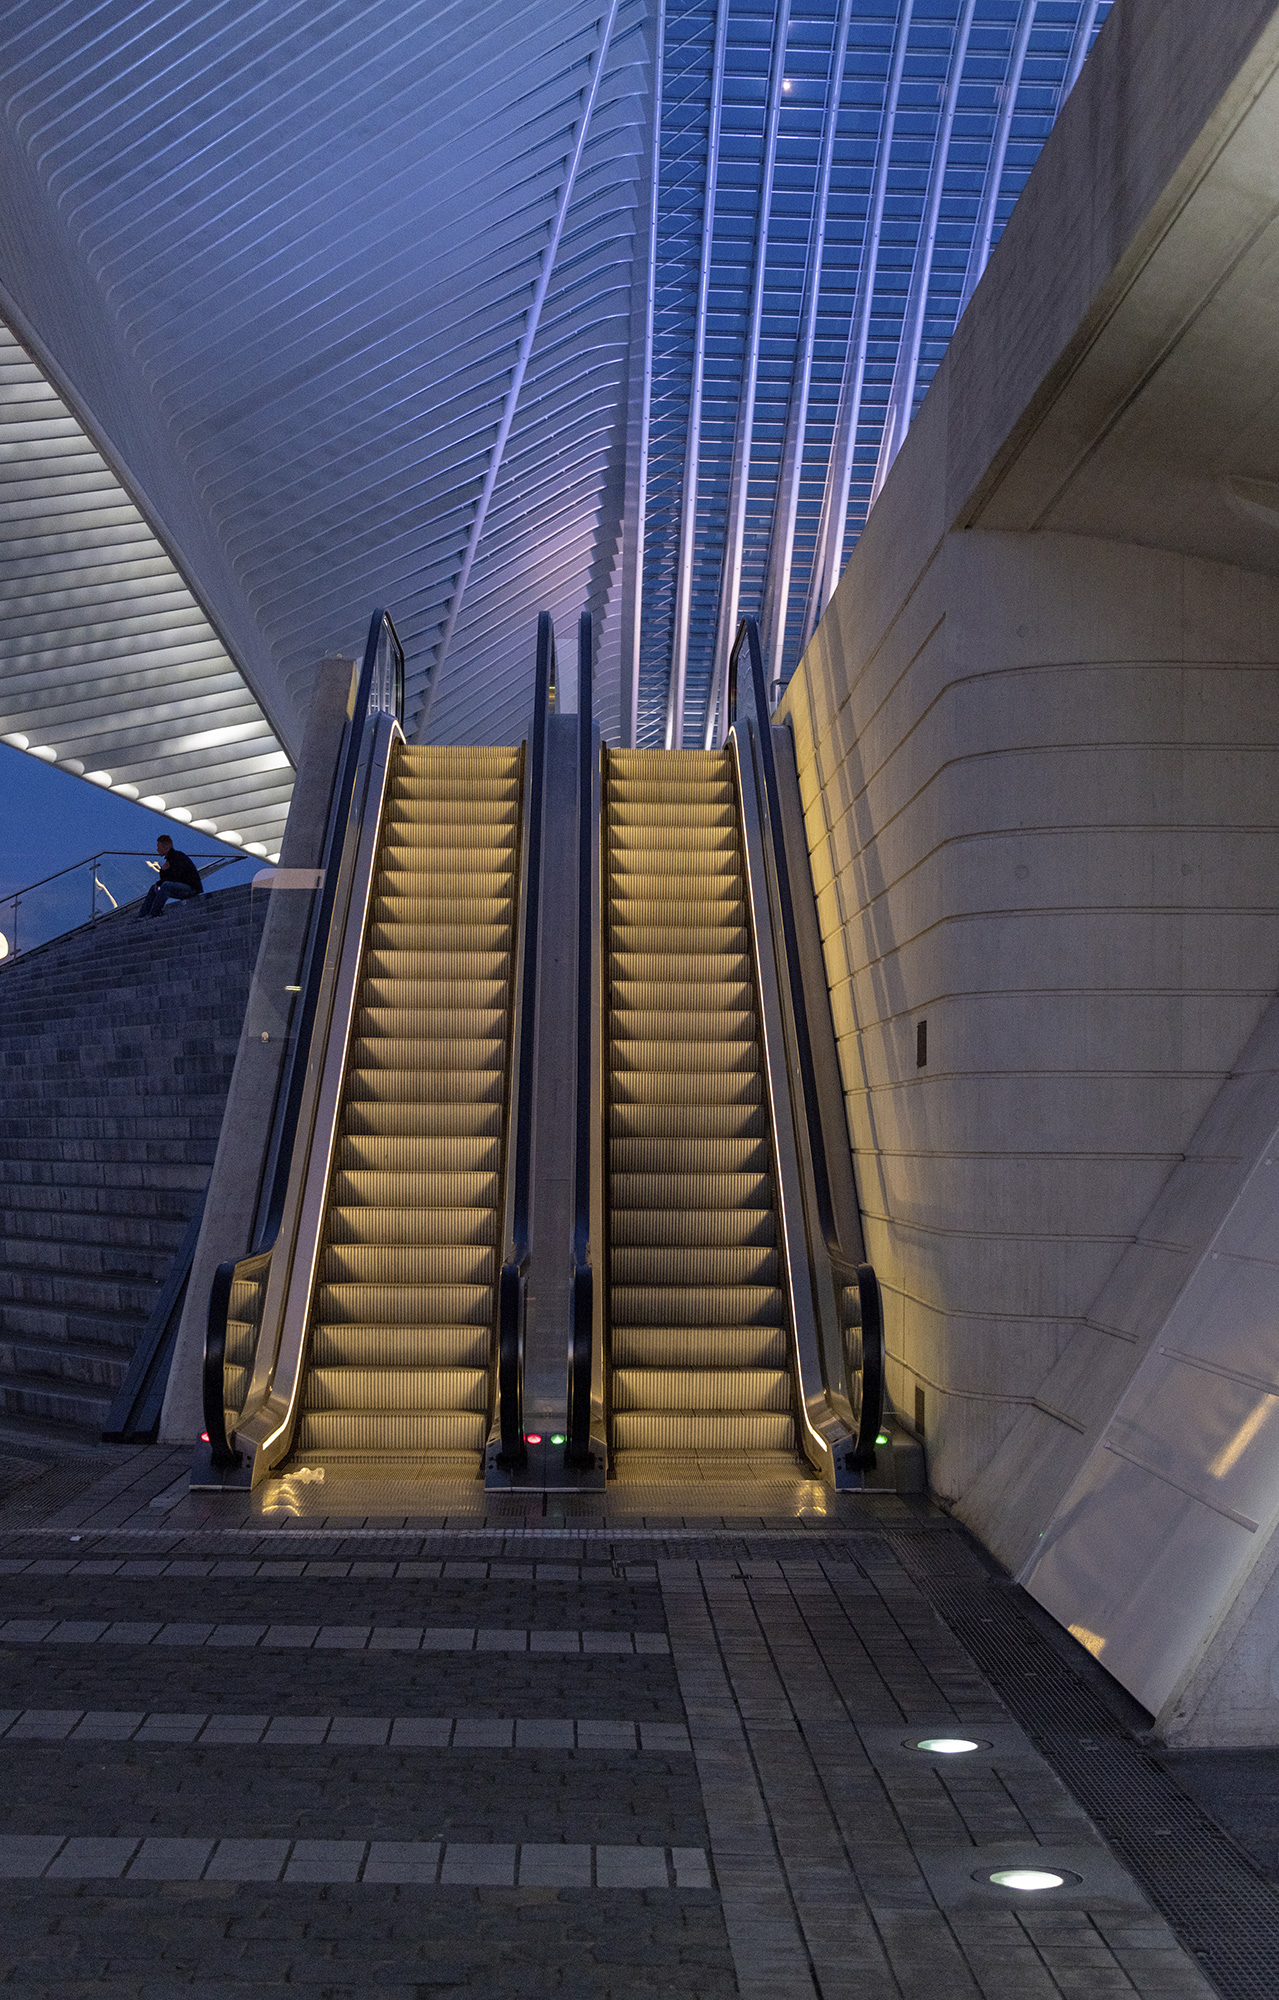 Liege Guillemins Intercity Railway Station by Santiago Calatrava